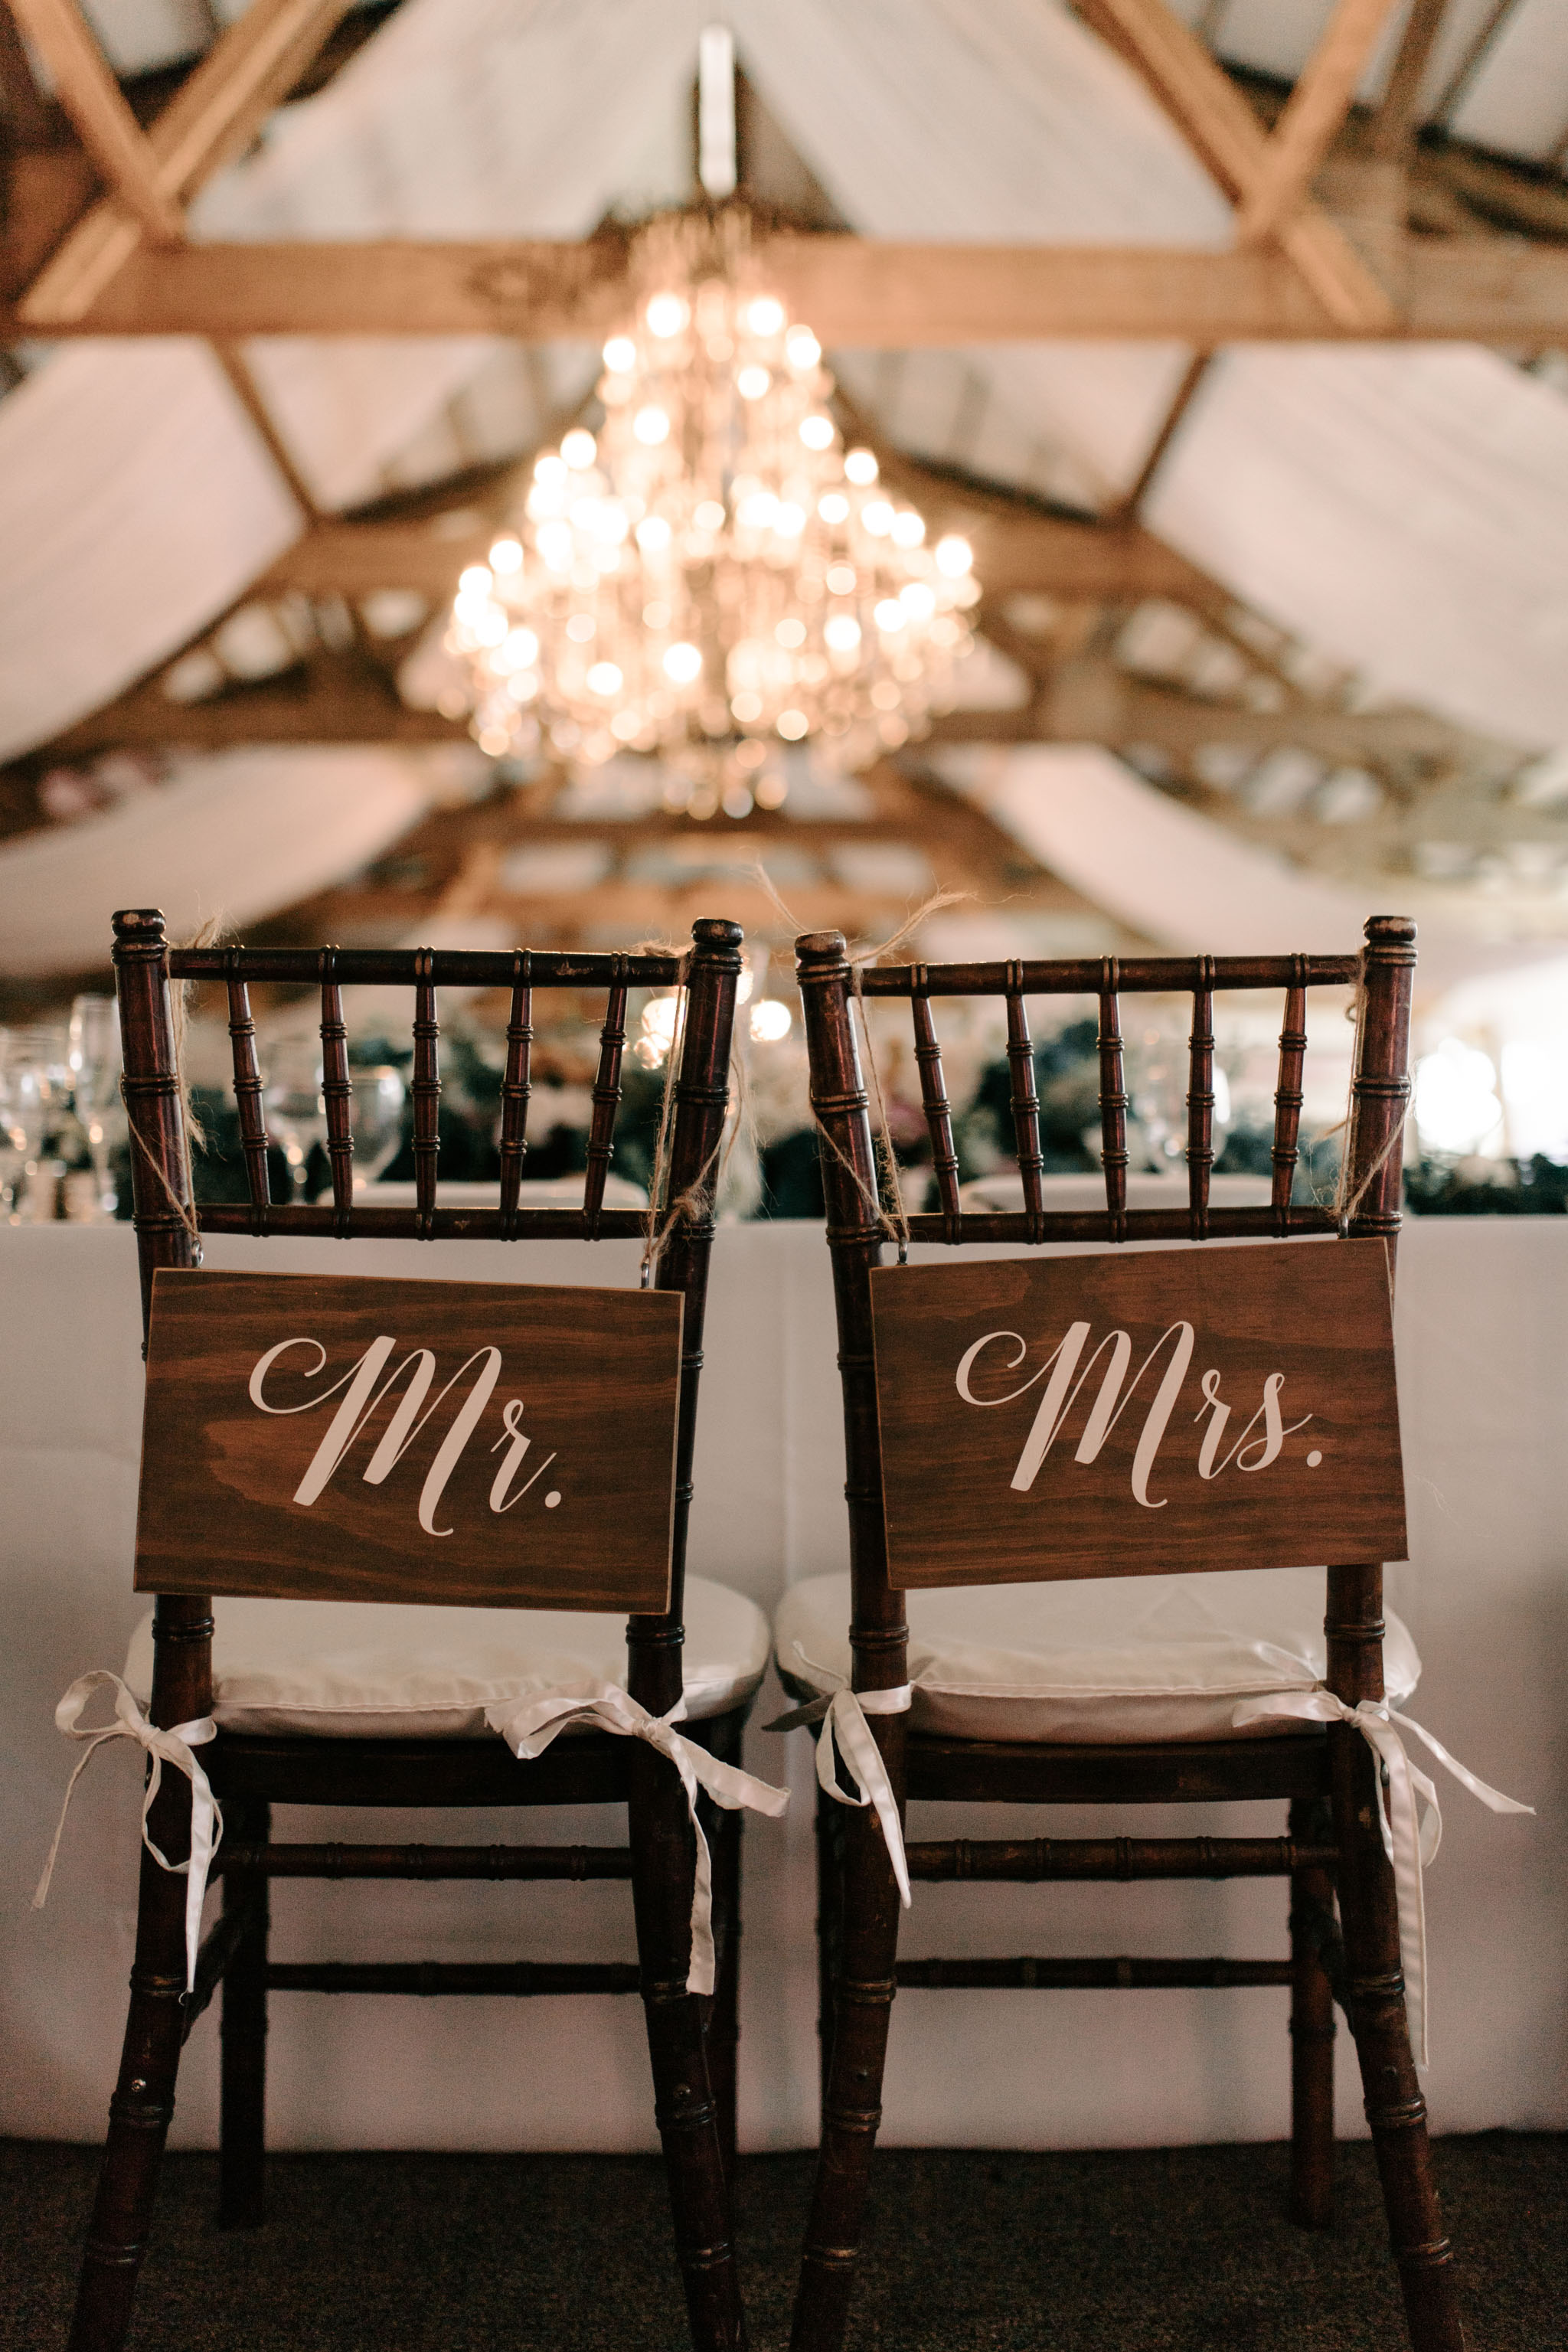 Mr. and Mrs. Chair Signs Idea - Hawaii Barn Wedding Reception - Sunset Ranch Hawaii Wedding By Oahu Wedding Photographer Desiree Leilani